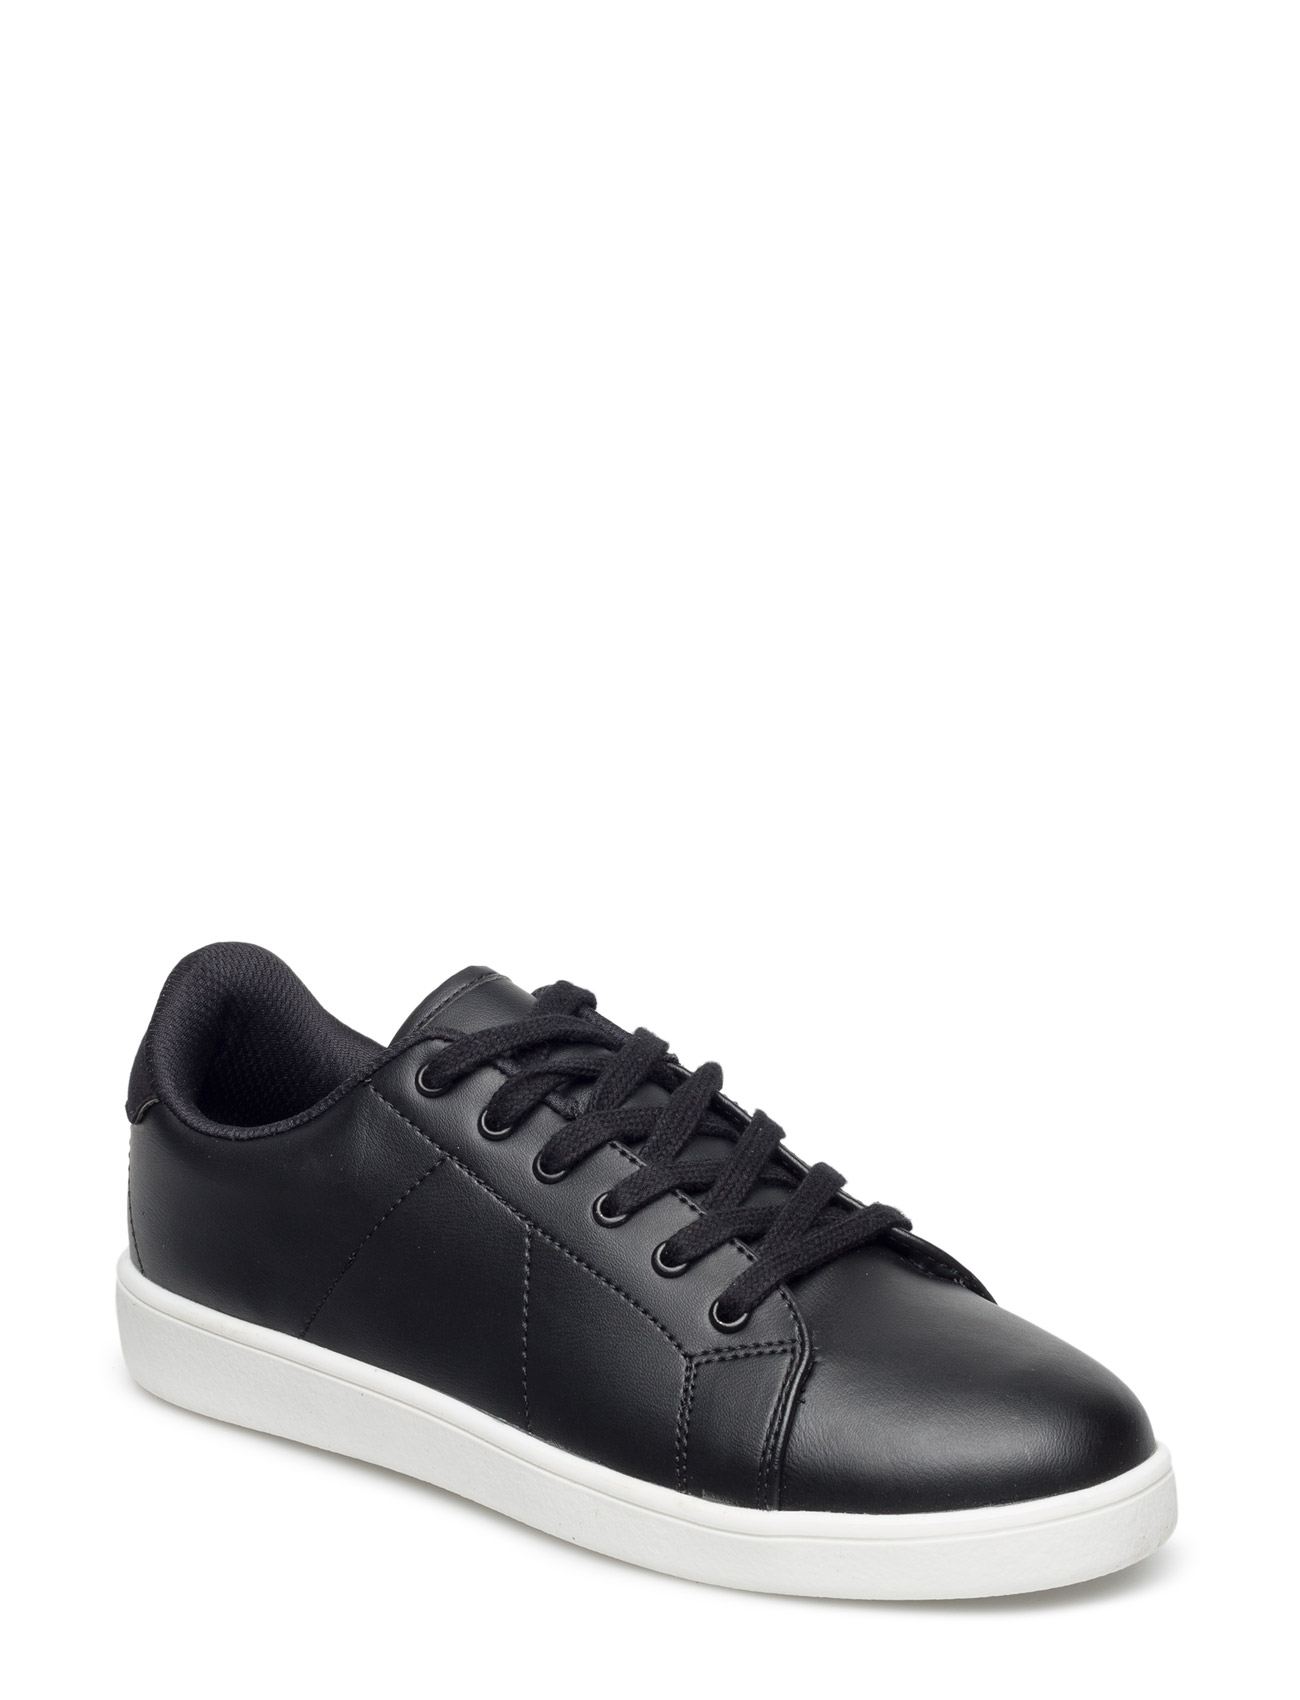 Lace-Up Sneakers Mango Sneakers til Kvinder i Sort